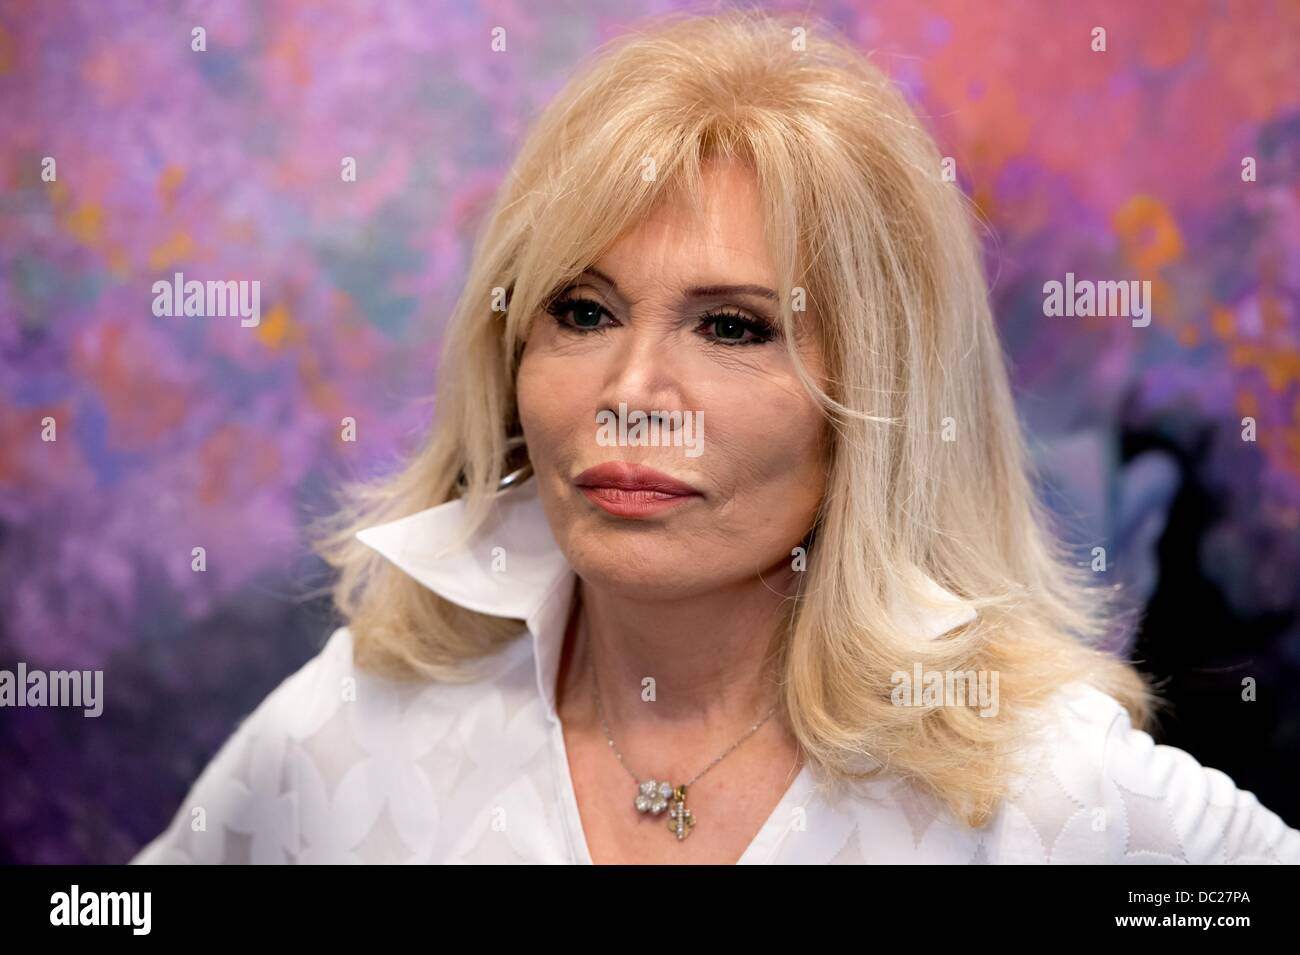 Amanda Lear Nude Photos 50